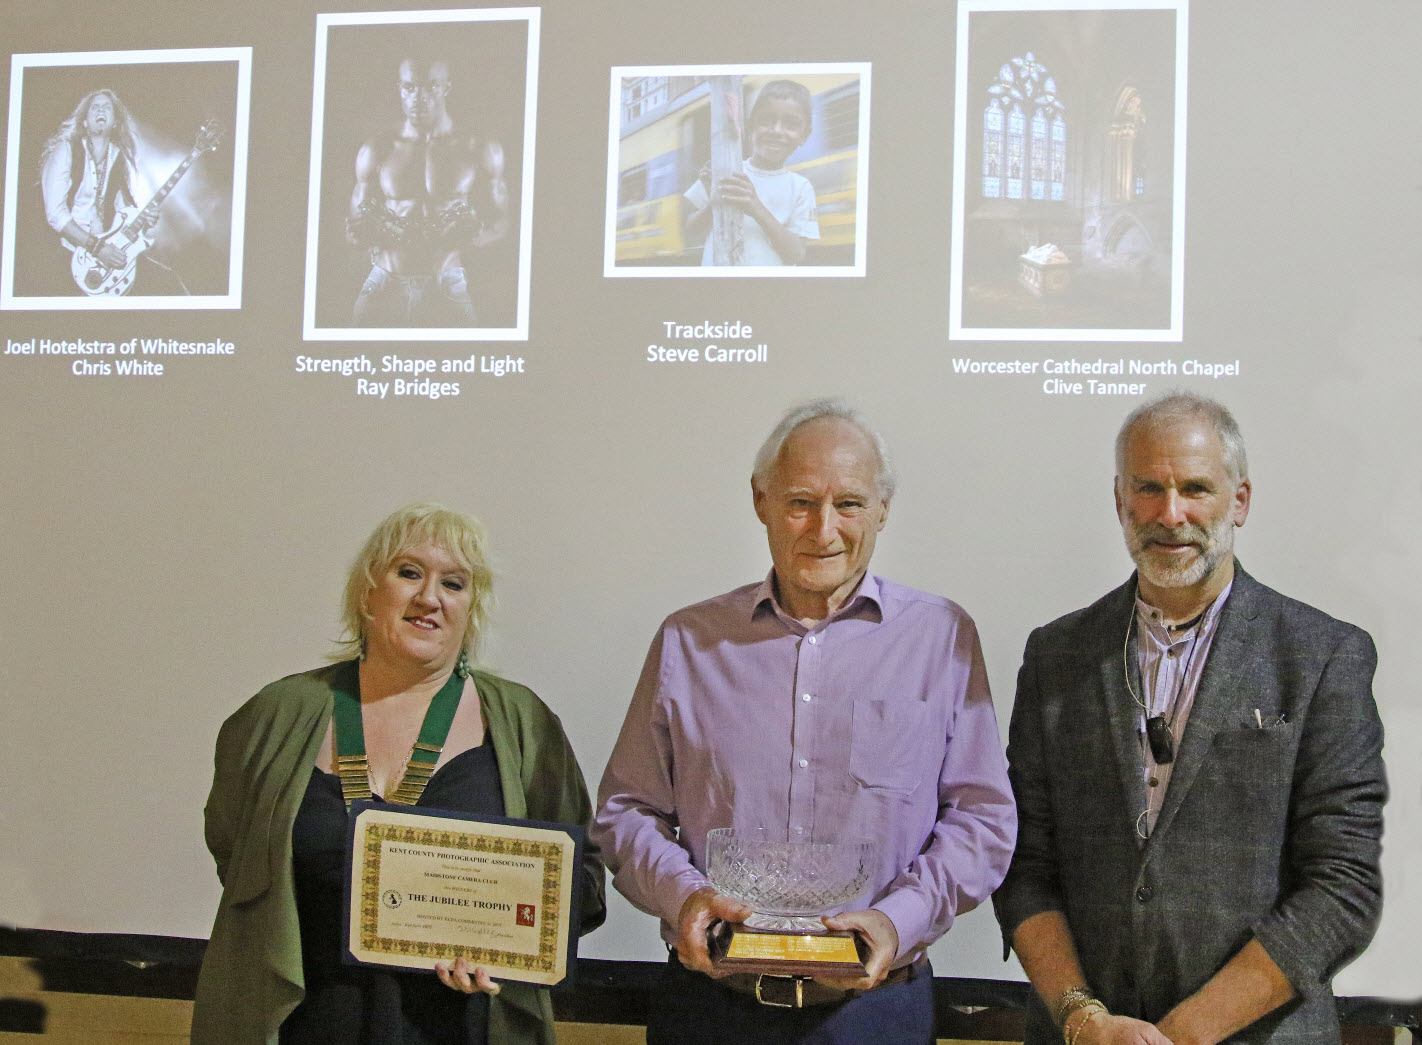 Tracy Hughes - KCPA President (left), Don Salmon - Maidstone Camera Club President (middle) and Ken Scott ARPS - Judge (right) with the trophy